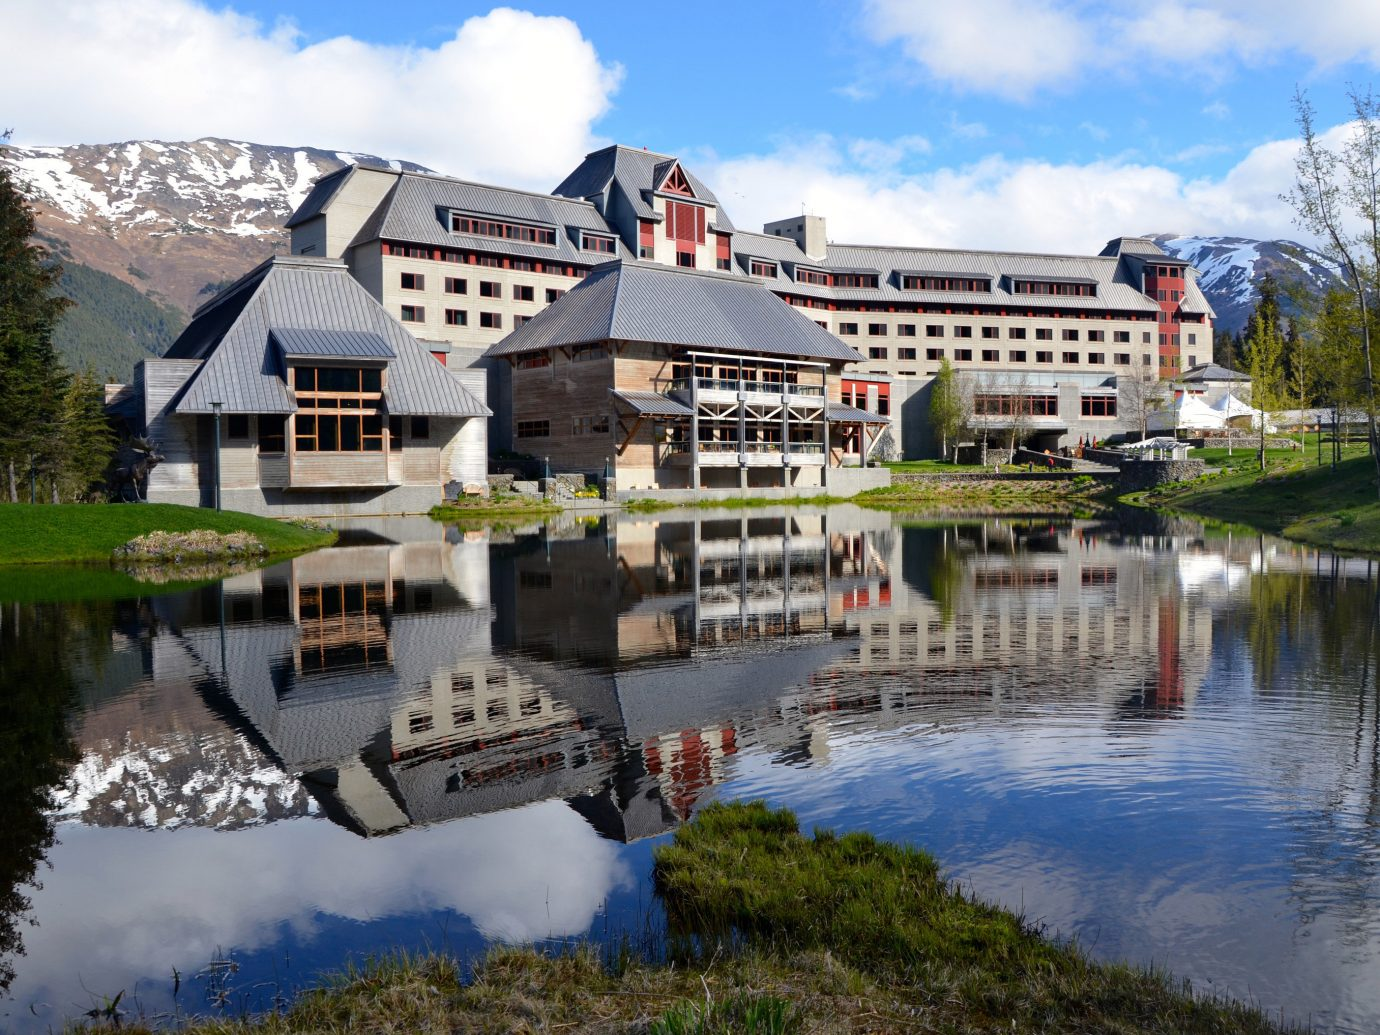 Hotels Lakes + Rivers Trip Ideas sky outdoor tree grass Town River house estate reflection Nature tourism waterway aerial photography Village Resort